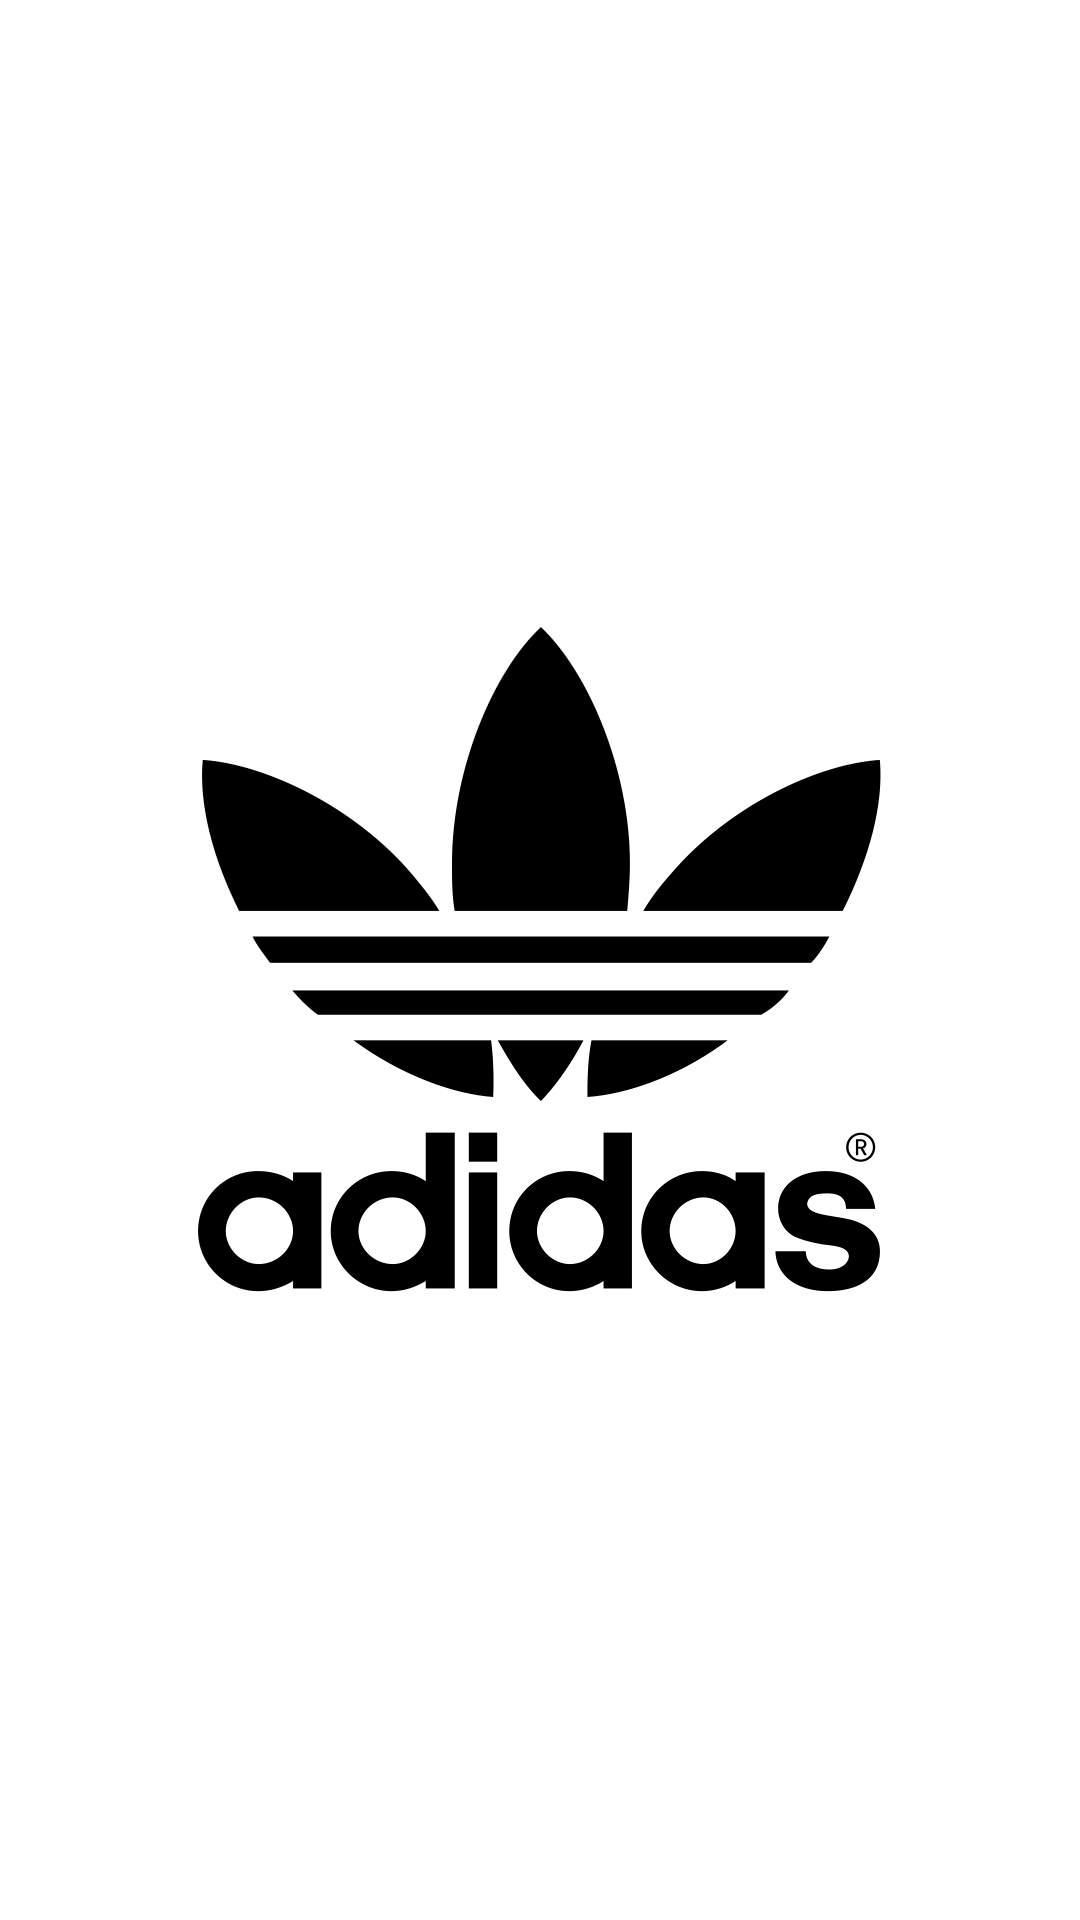 adidas Logo iPhone Wallpaper | Summer outfits | Pinterest ...